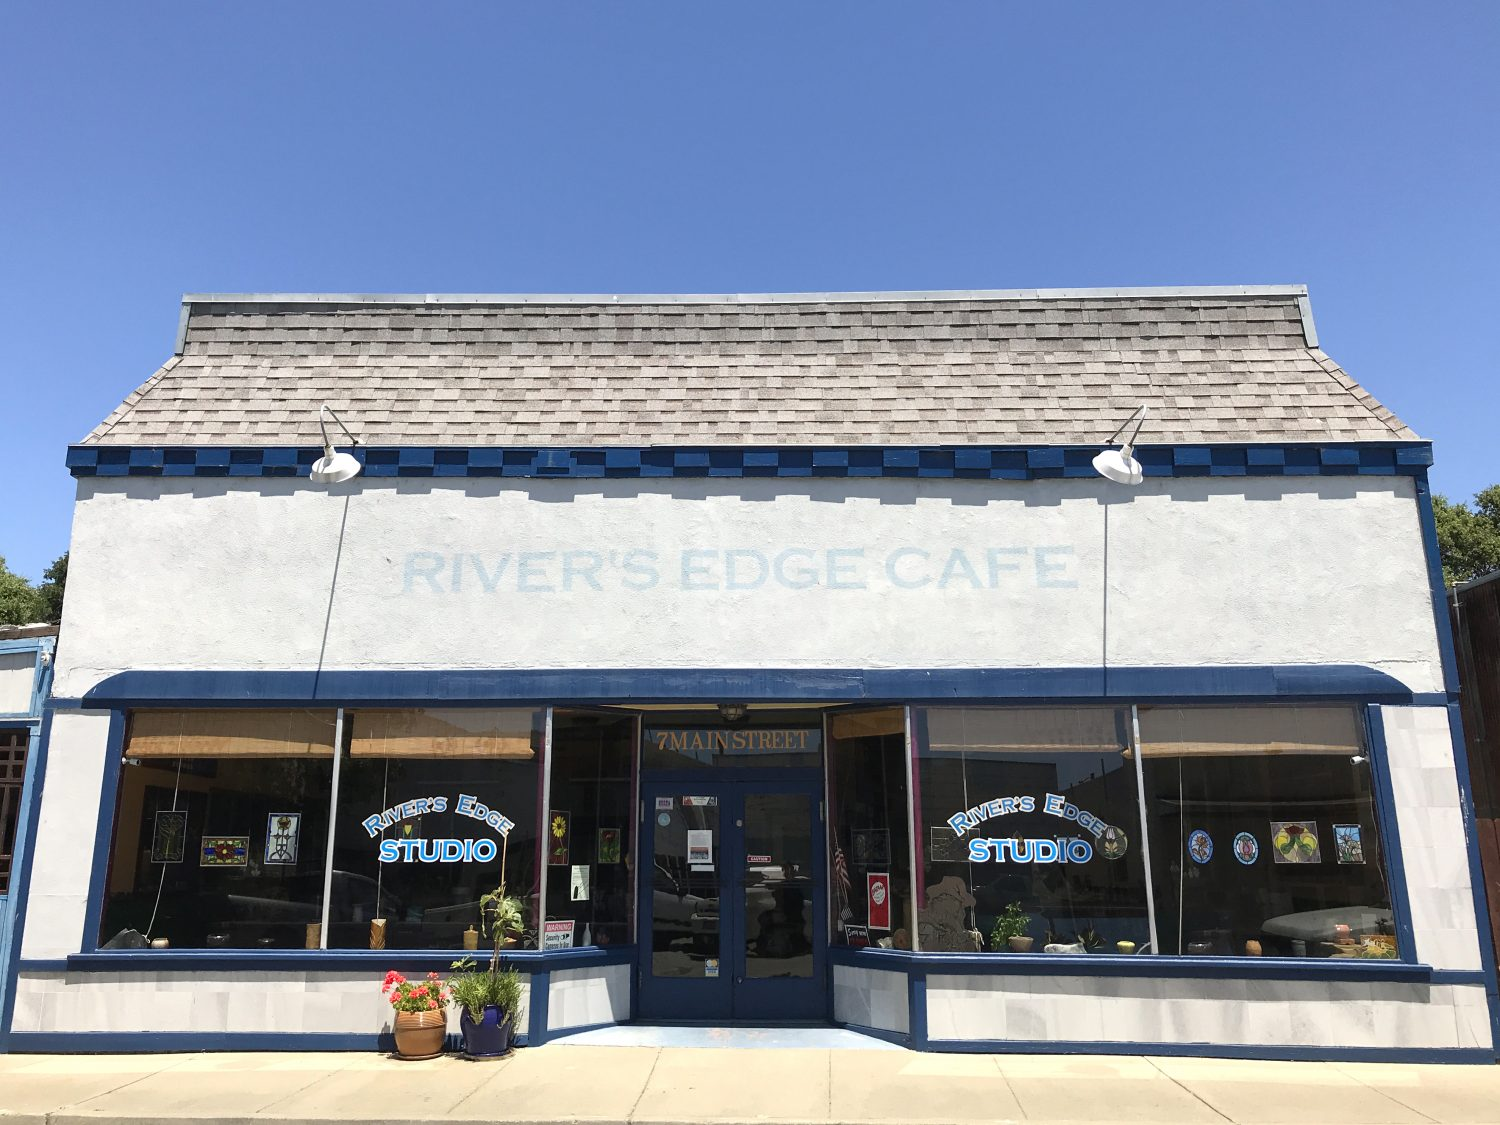 River's Edge Cafe storefront view